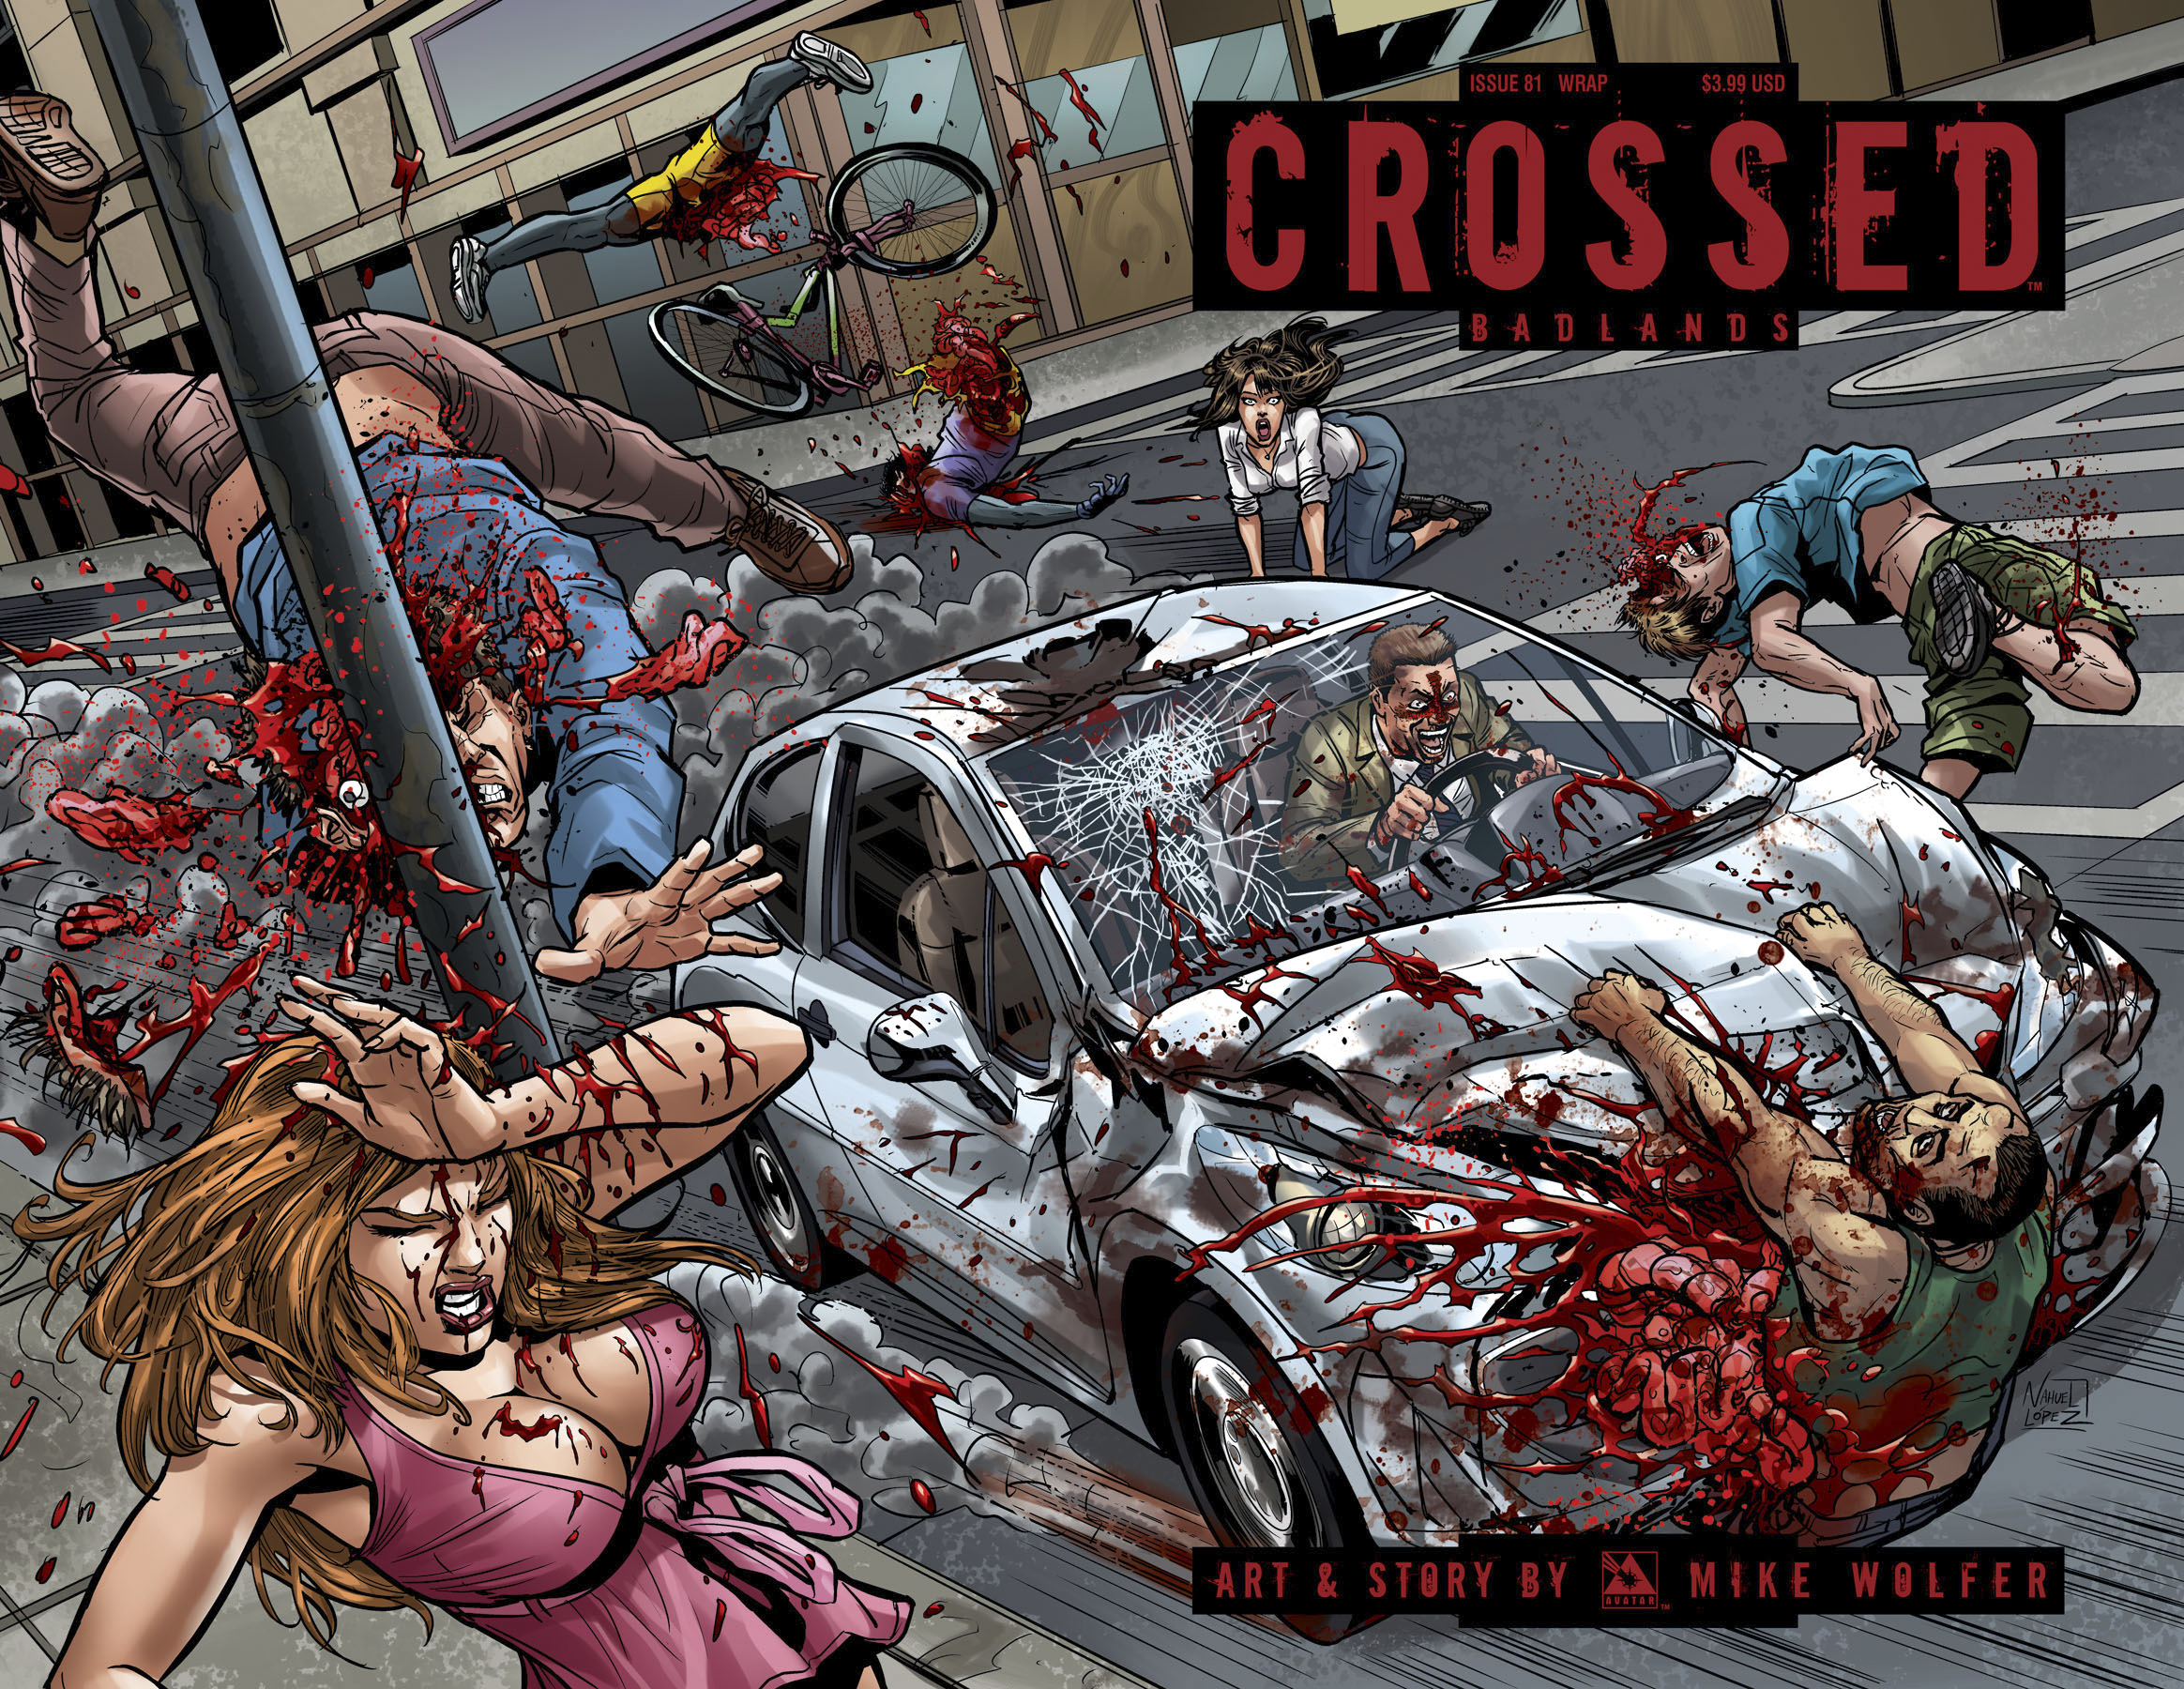 CROSSED BADLANDS #81 WRAP CVR (MR)